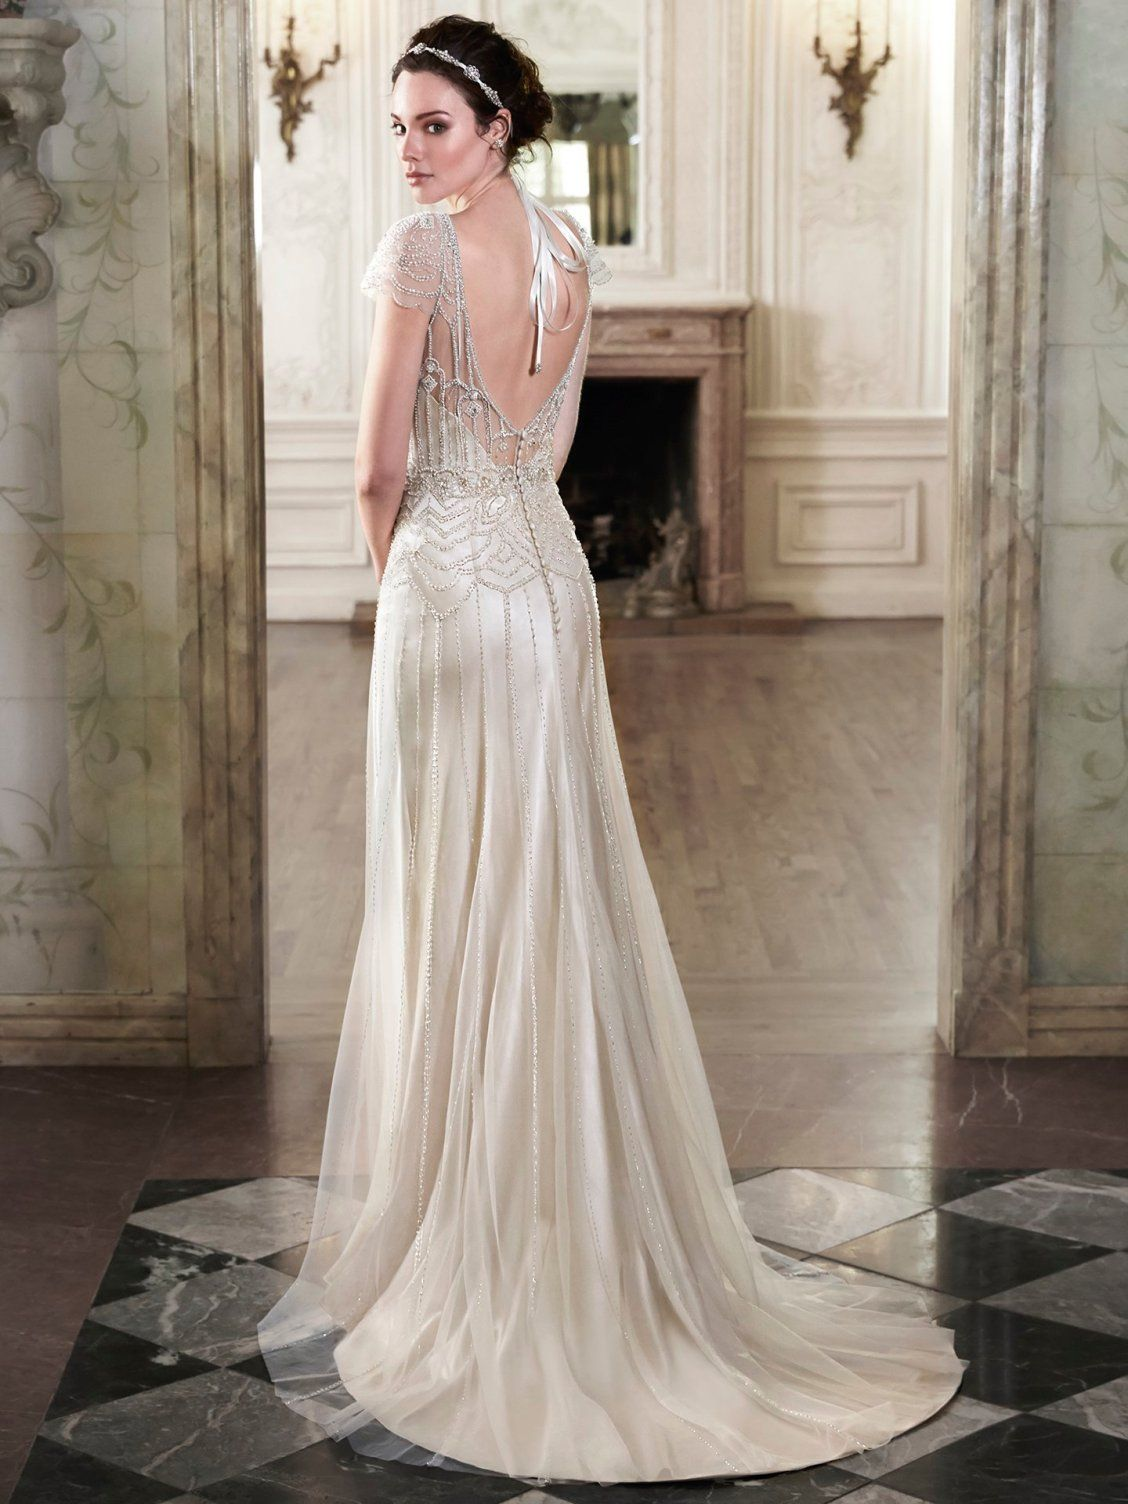 463fc894e9f Maggie Sottero Ettia wedding dress. The perfect blend of romance and  refined sophistication is found in this tulle and Vogue satin sheath wedding  dress